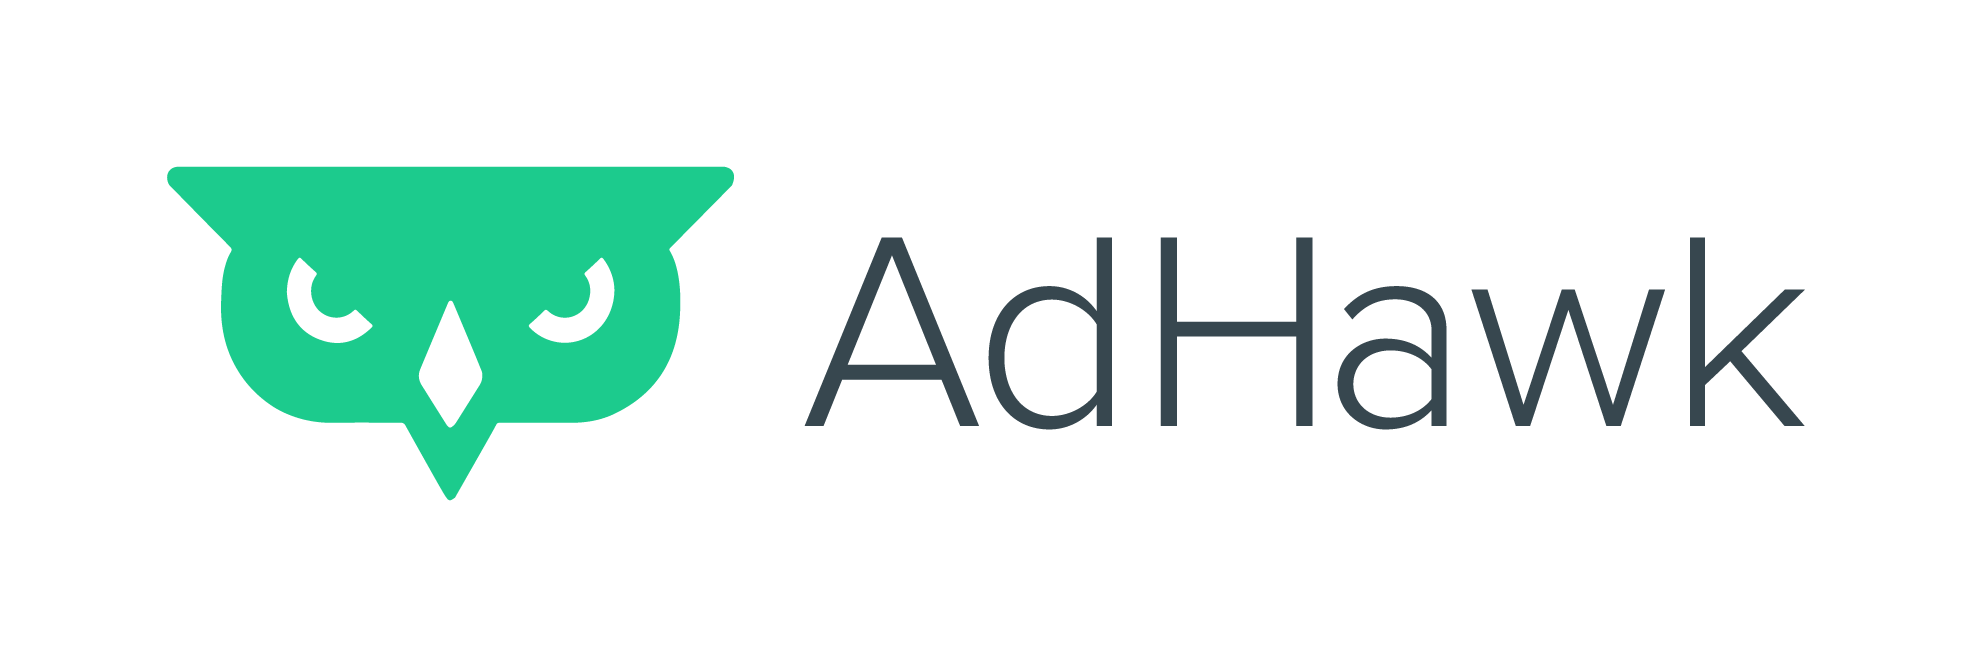 Machine Learning Specialist at AdHawk